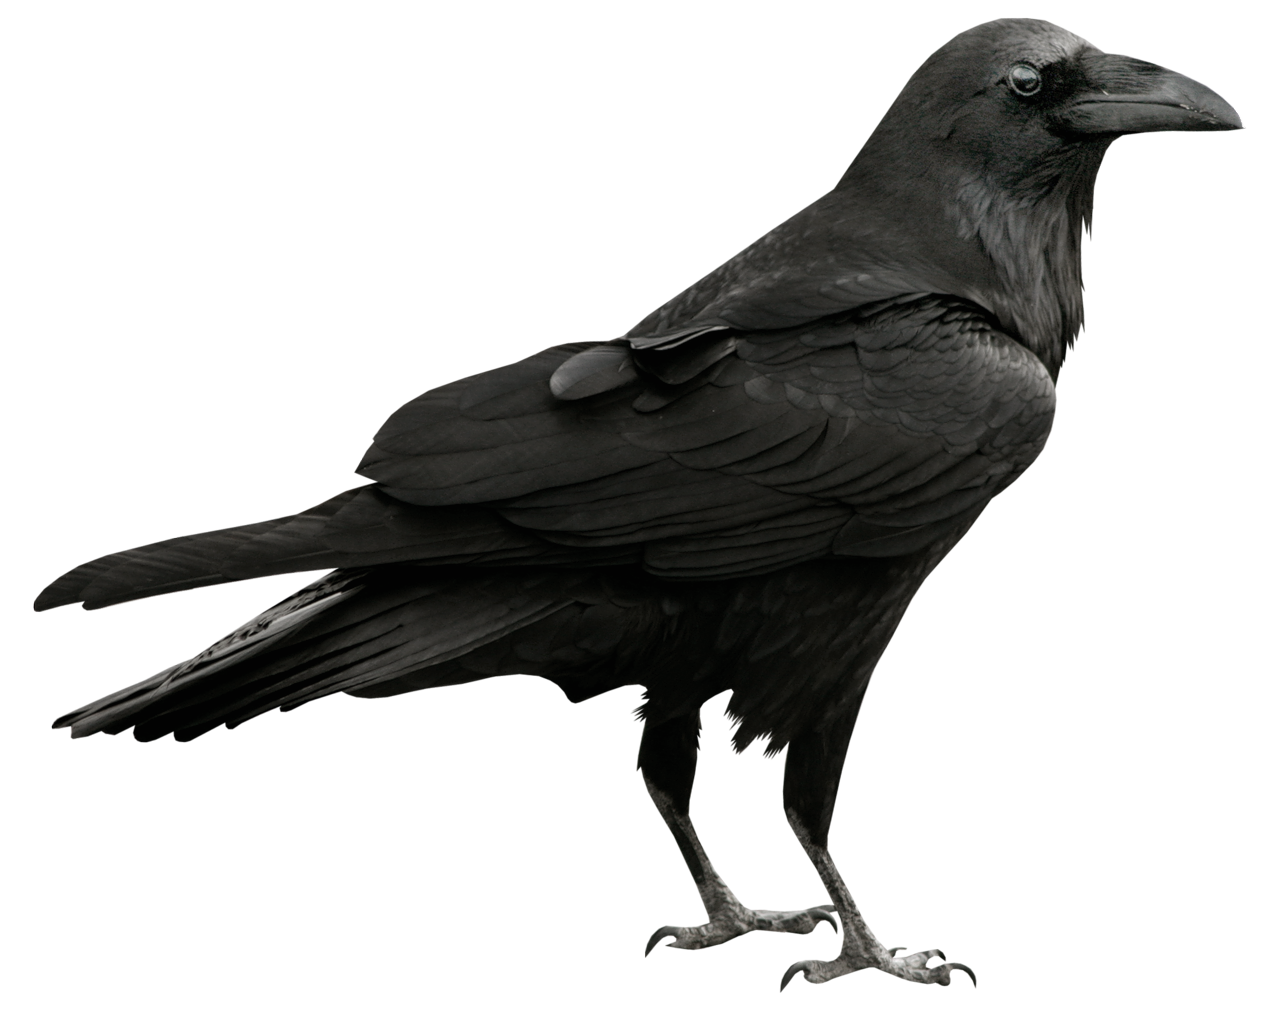 transparent feathers raven